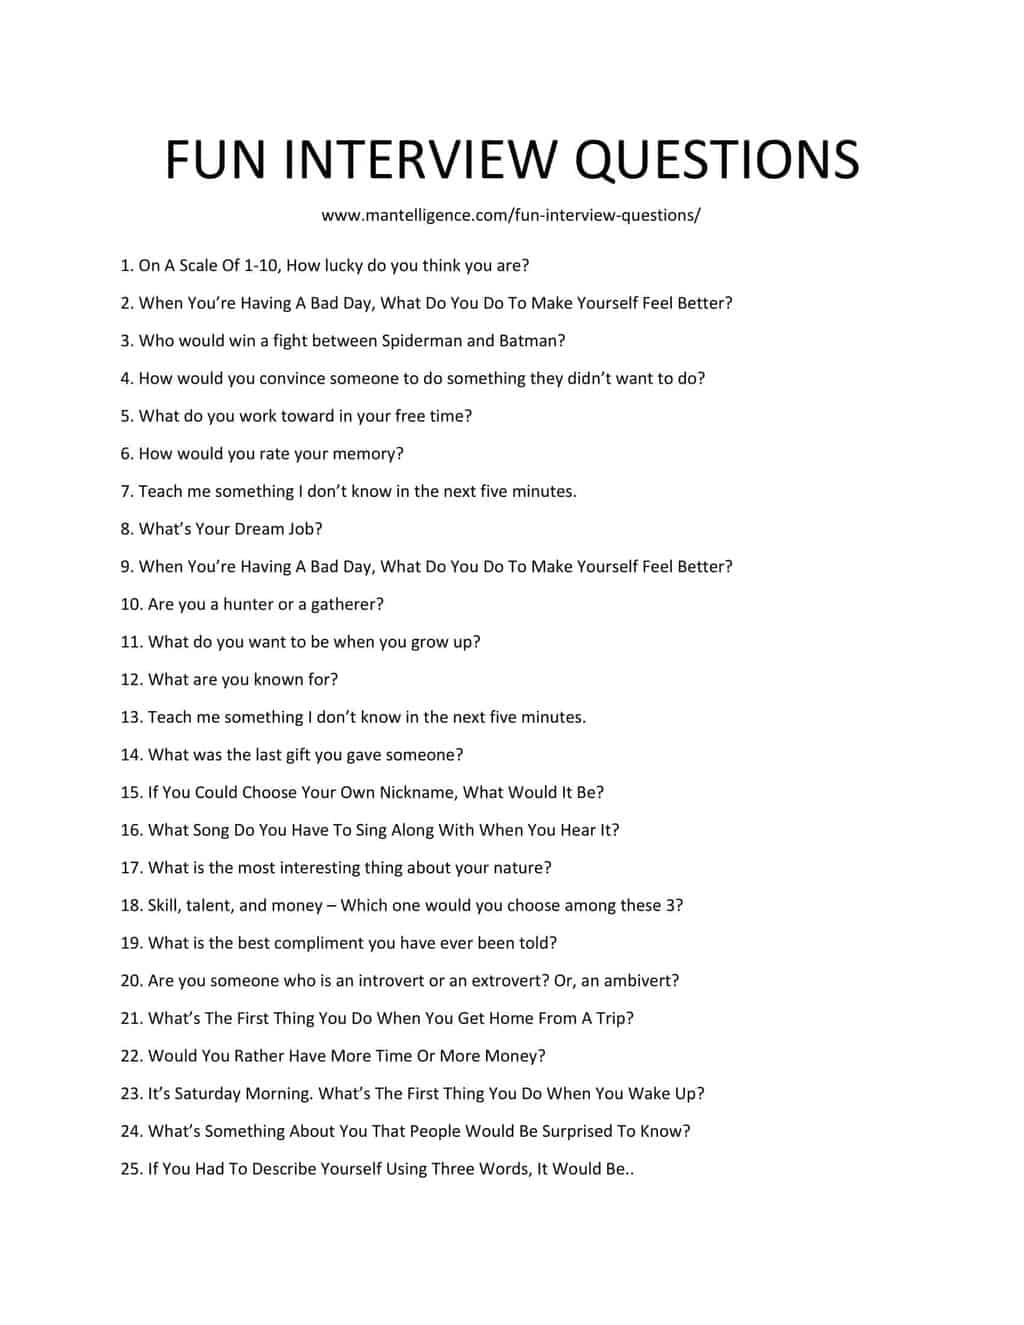 FUN_INTERVIEW_QUESTIONS-1[1]